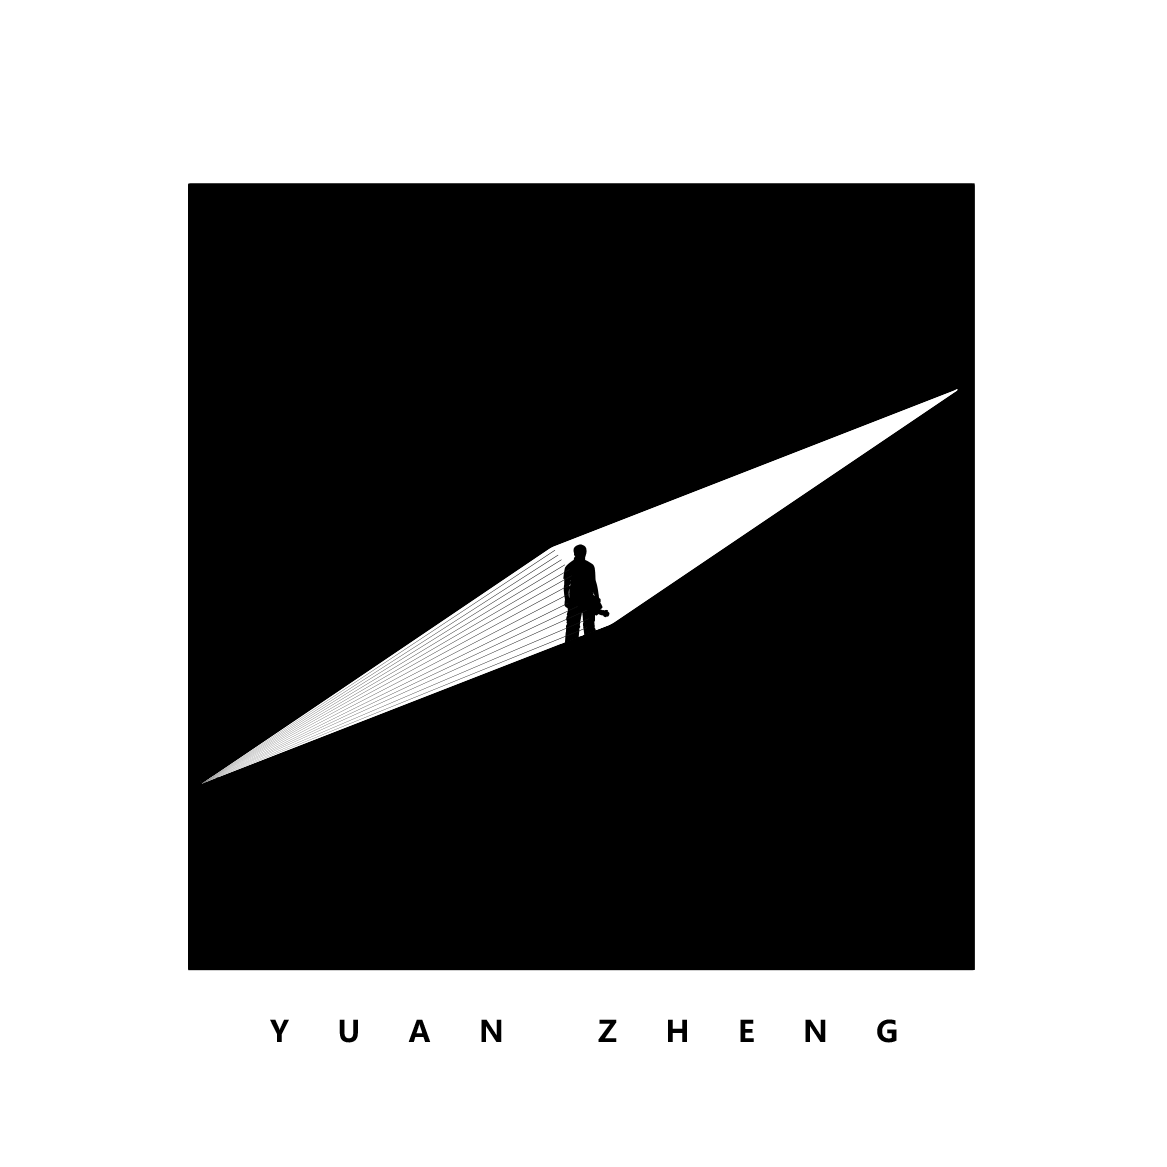 logo文件22.png